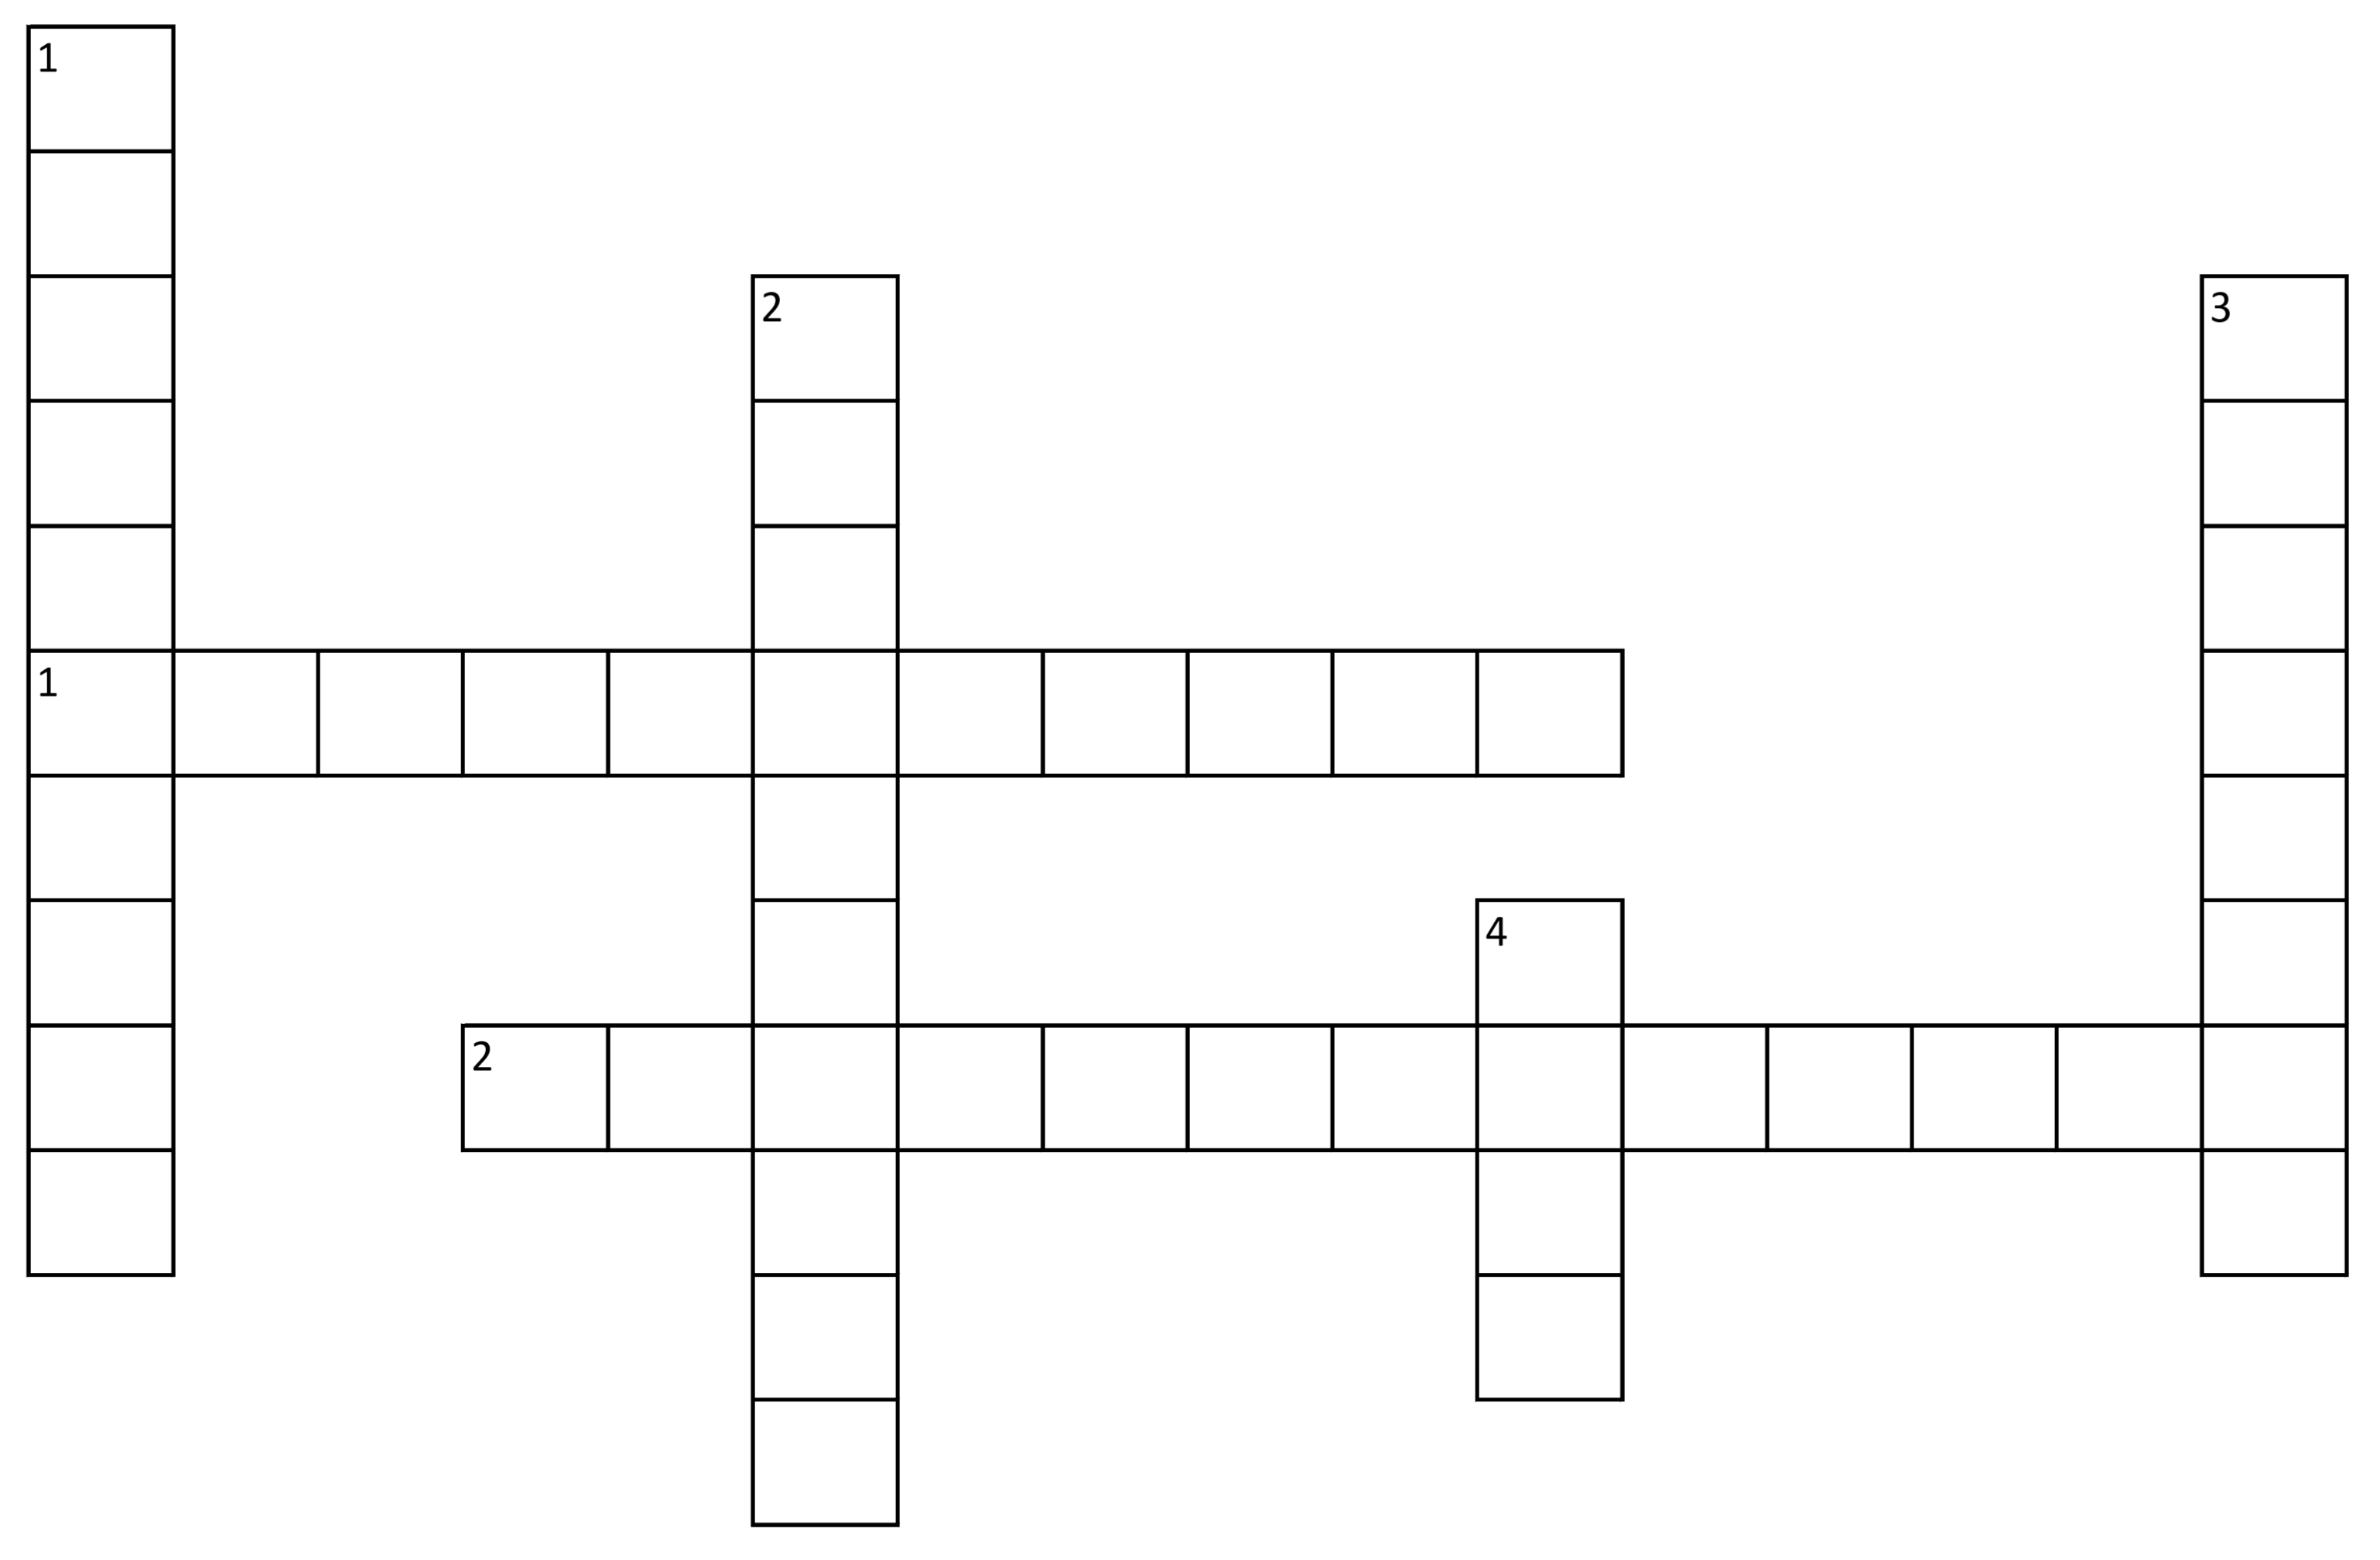 004 Essay Crossword Cw Blank Fascinating Byline Clue Short Puzzle Persuasive Full